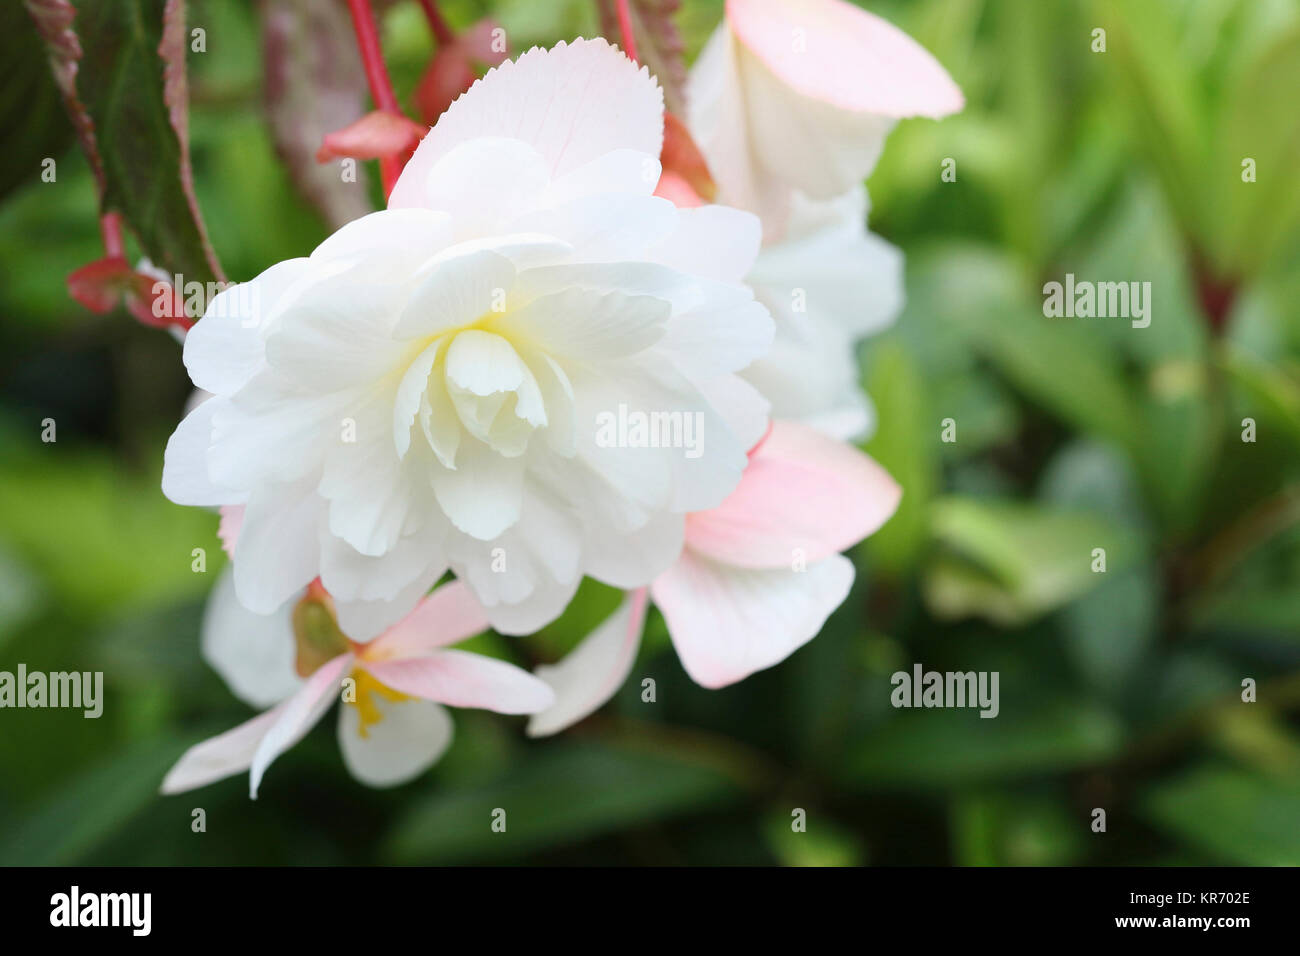 Begonia, Hanging open white flower head with a touch of yellow in the centre. - Stock Image